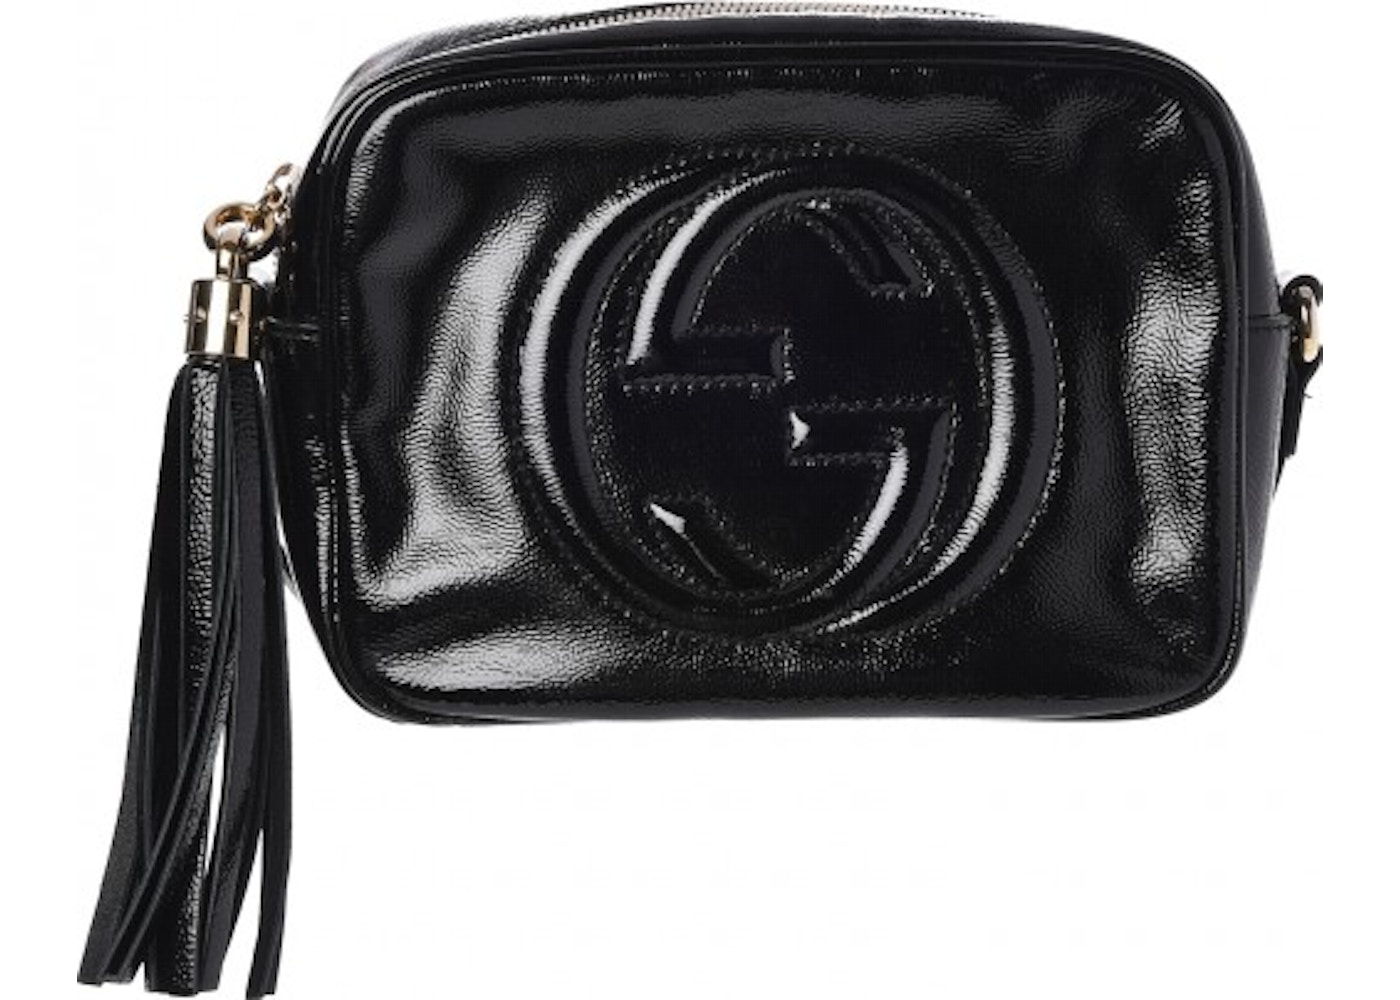 fd6370169adf Gucci Soho Disco Patent Leather Small Black